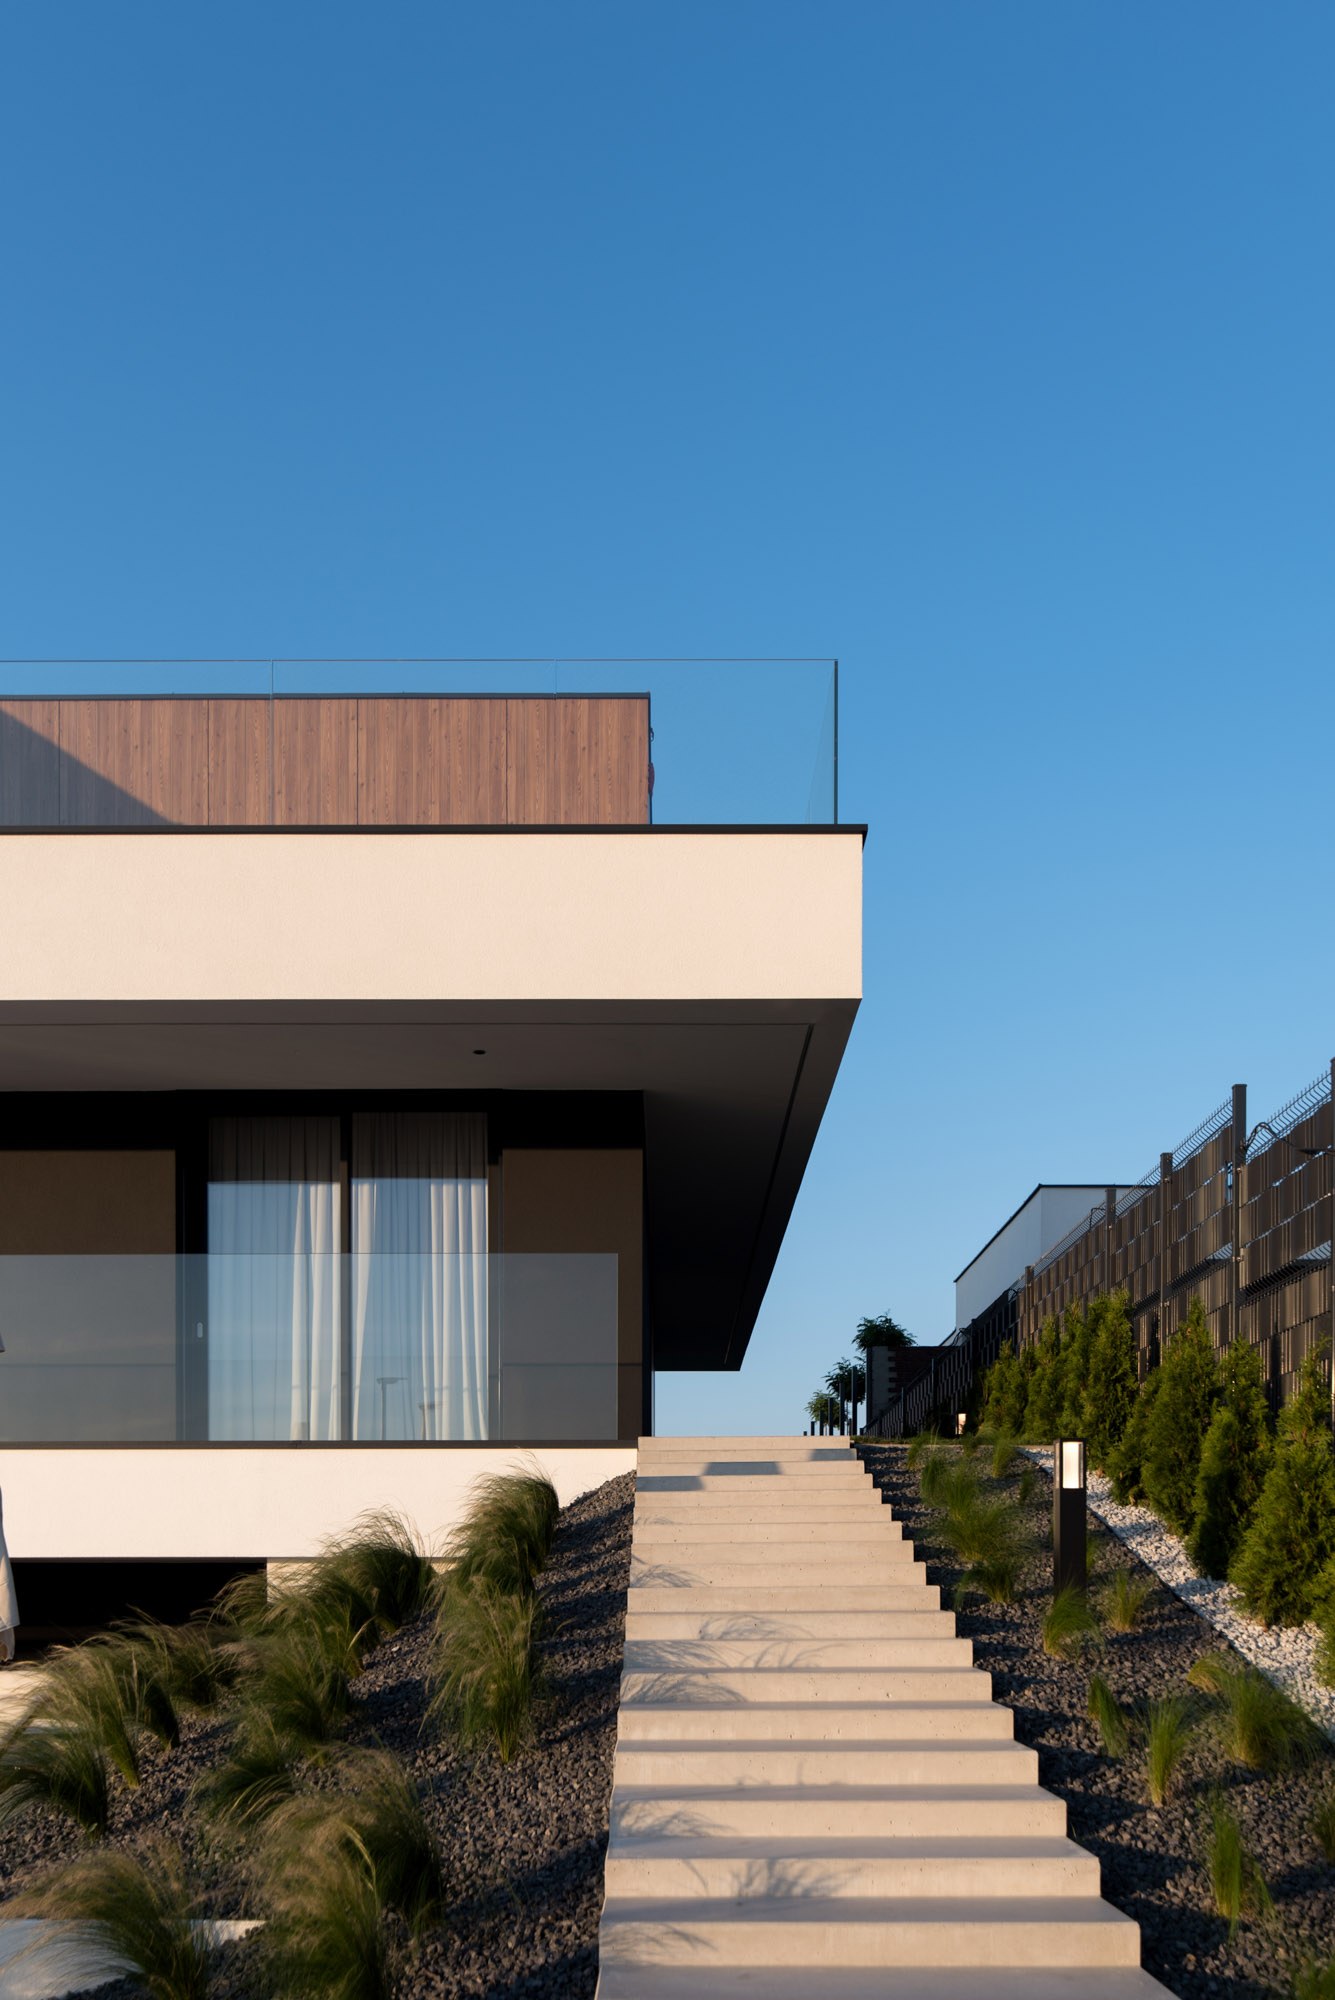 A modern house with exterior stairs.